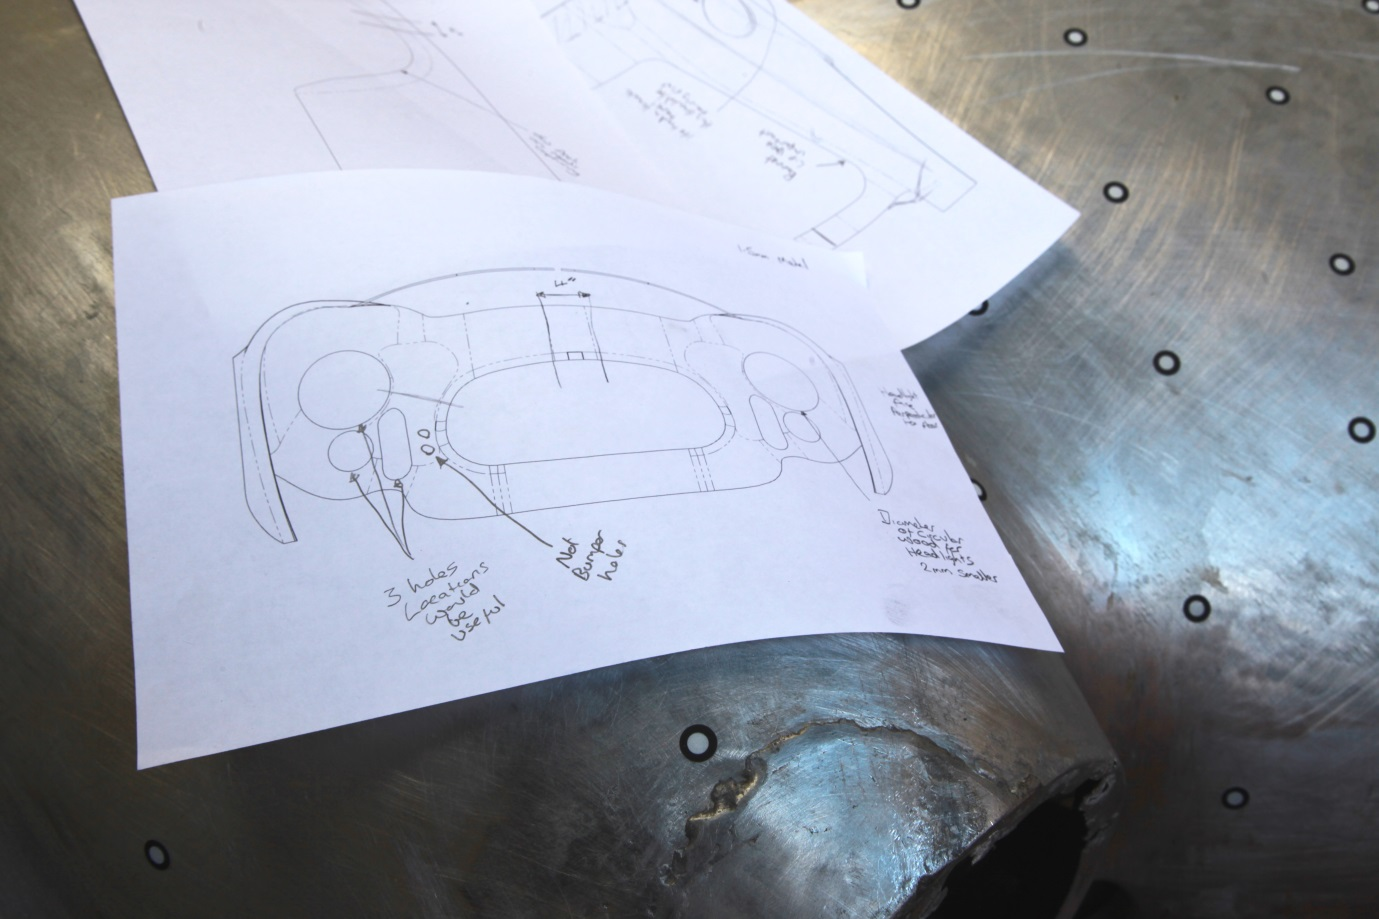 Modifications to CAD model can be made by using good old fashioned pencil and paper. (Pencil not included.)